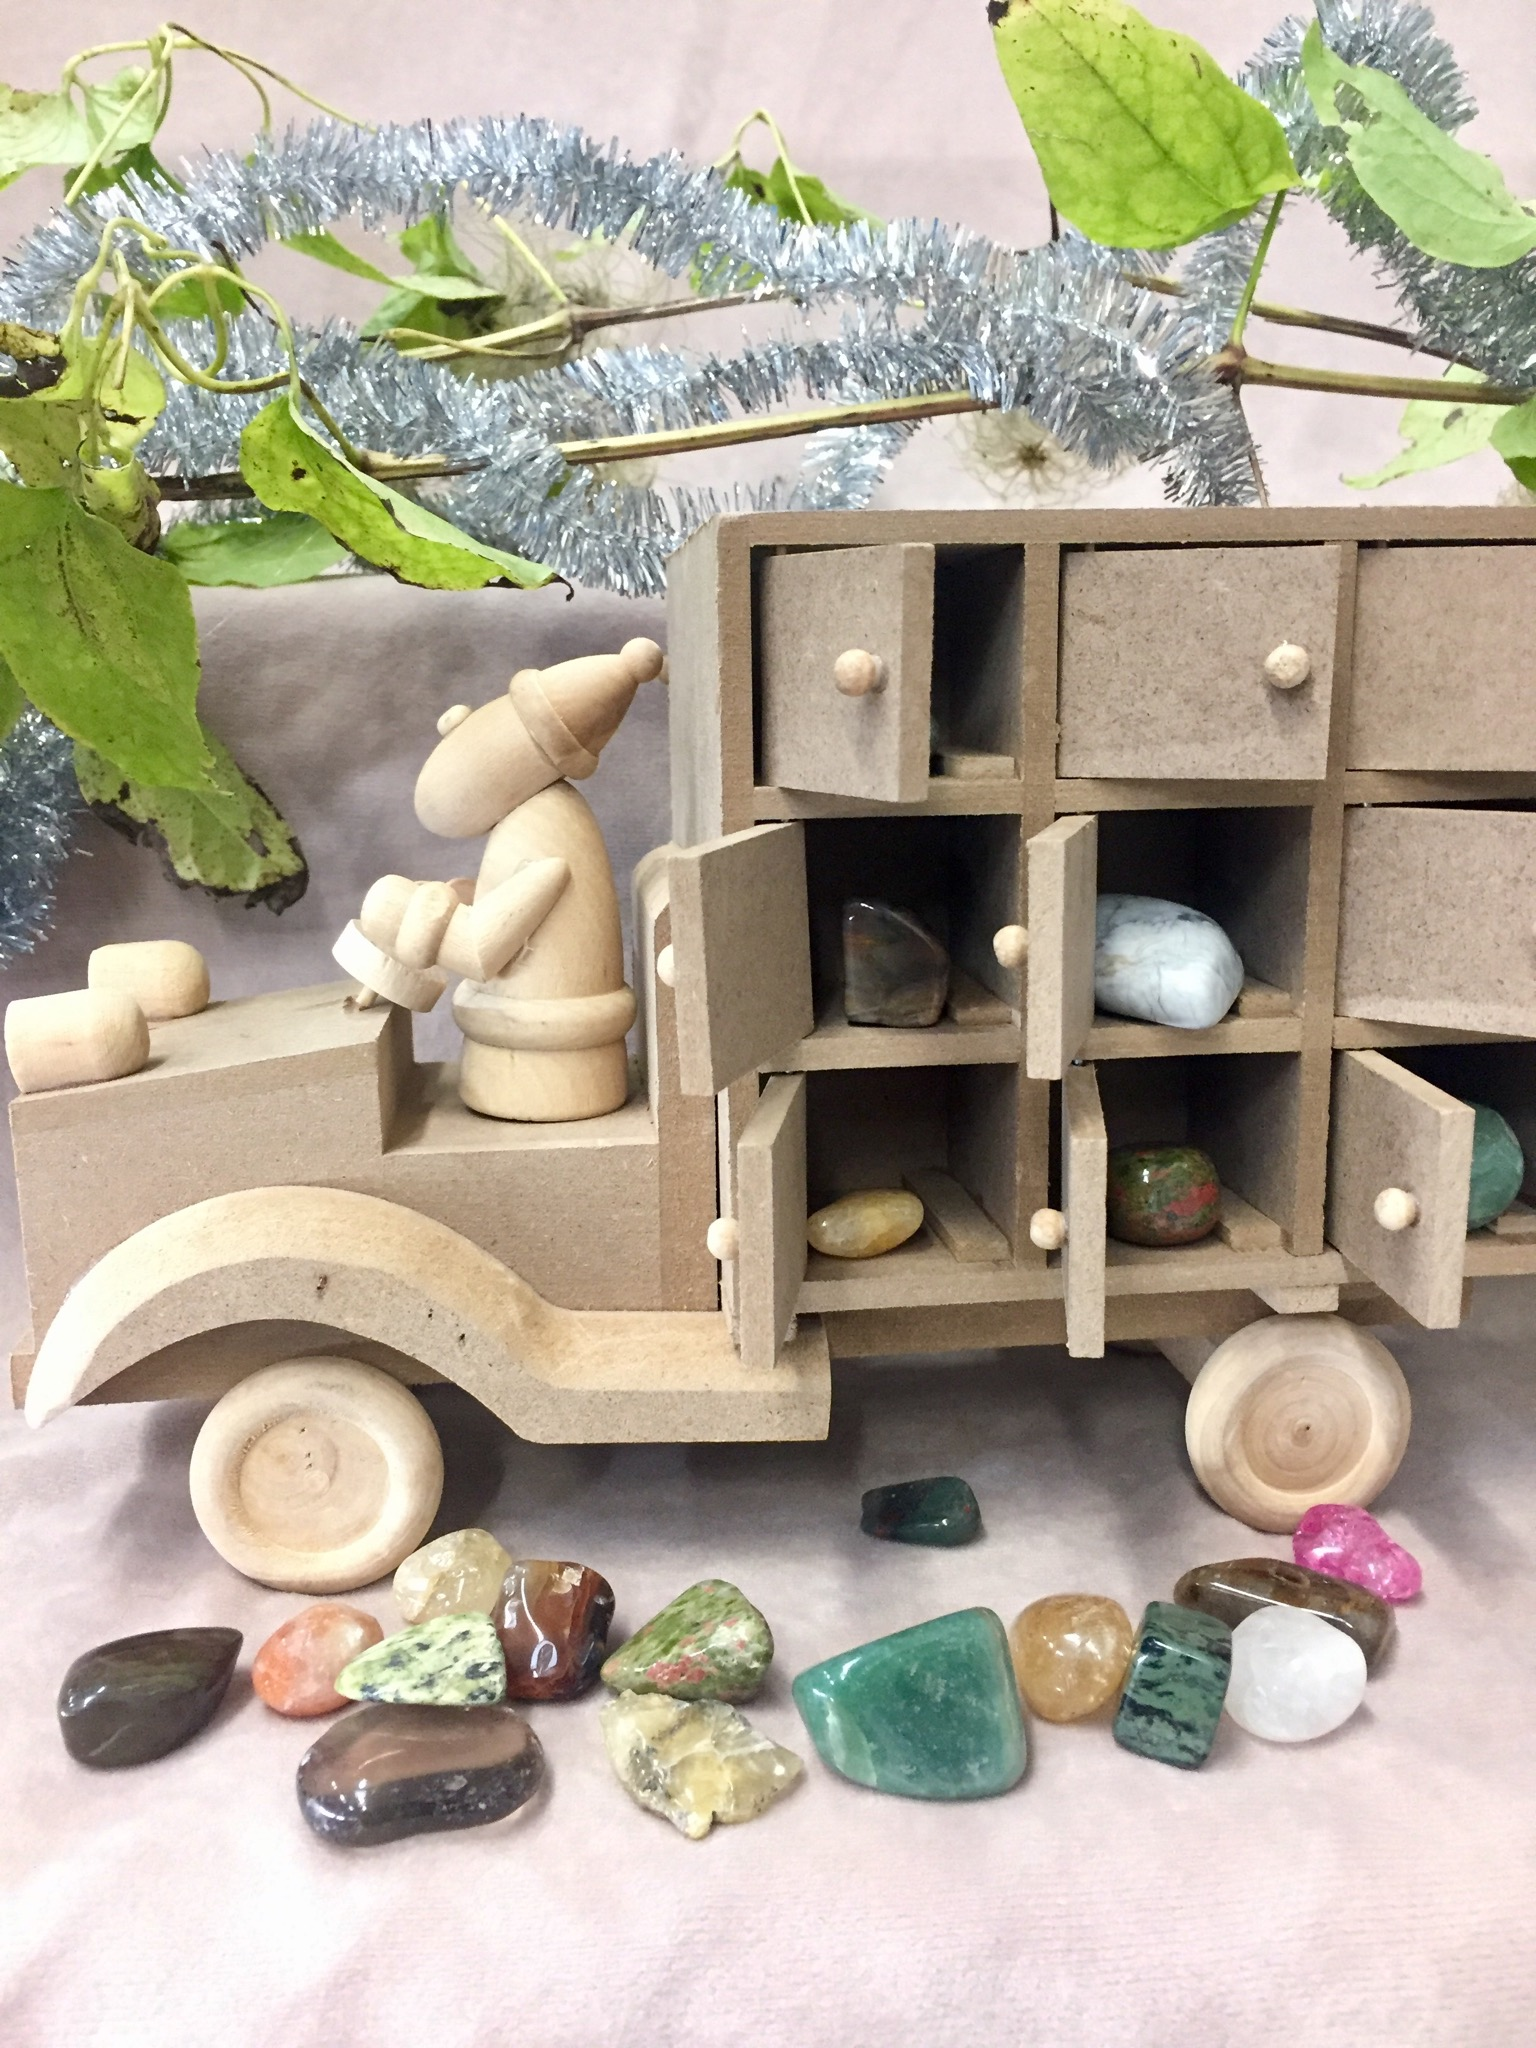 Gemstone Advent Calendar, Santa Truck, close up